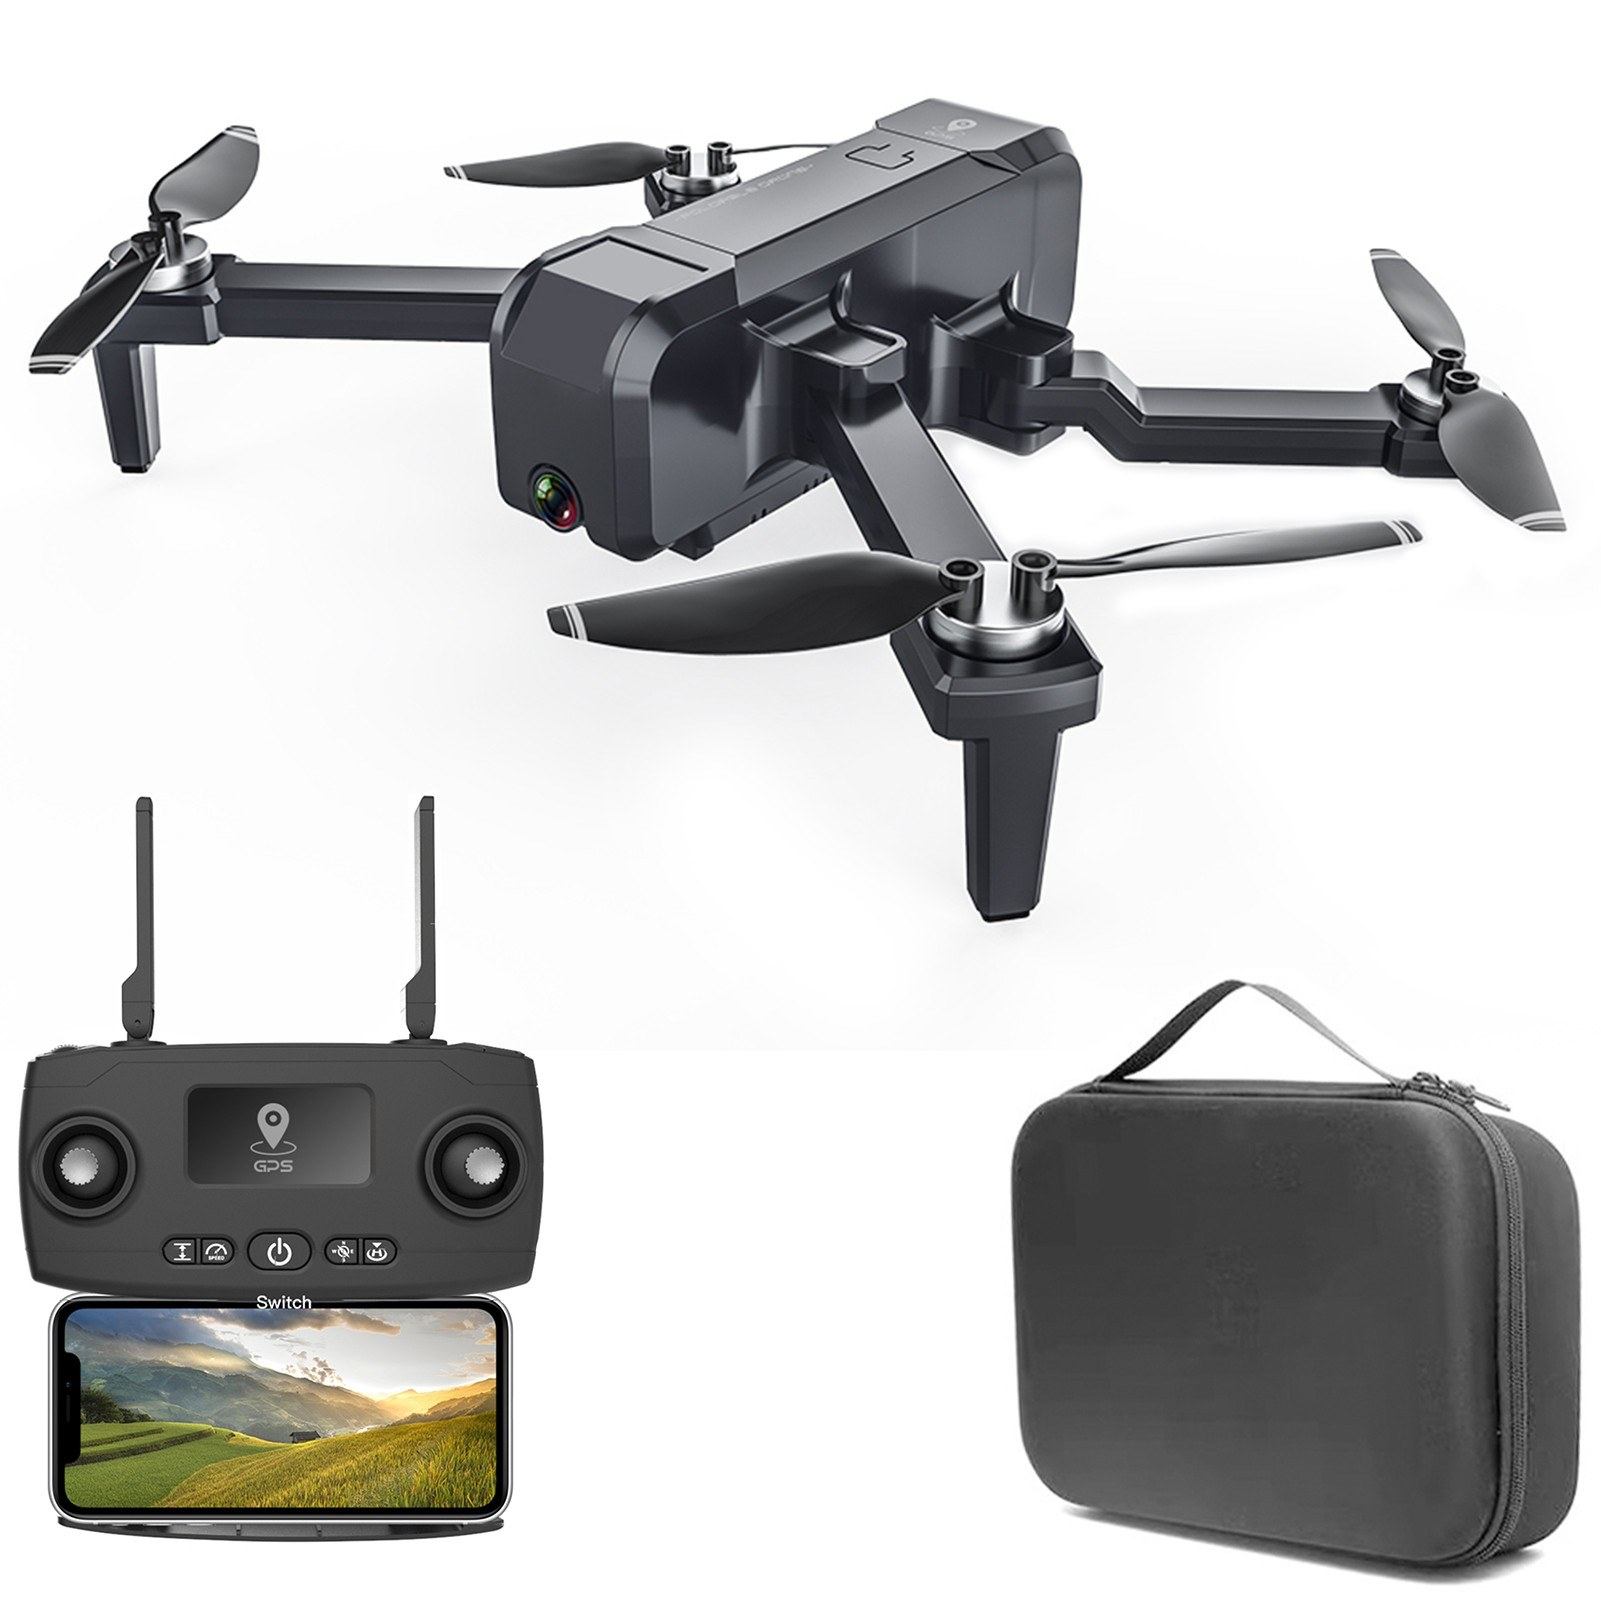 Tomtop - 54% OFF KF607 5G WIFI FPV GPS 4K Camera RC Drone, Free Shipping $91.99